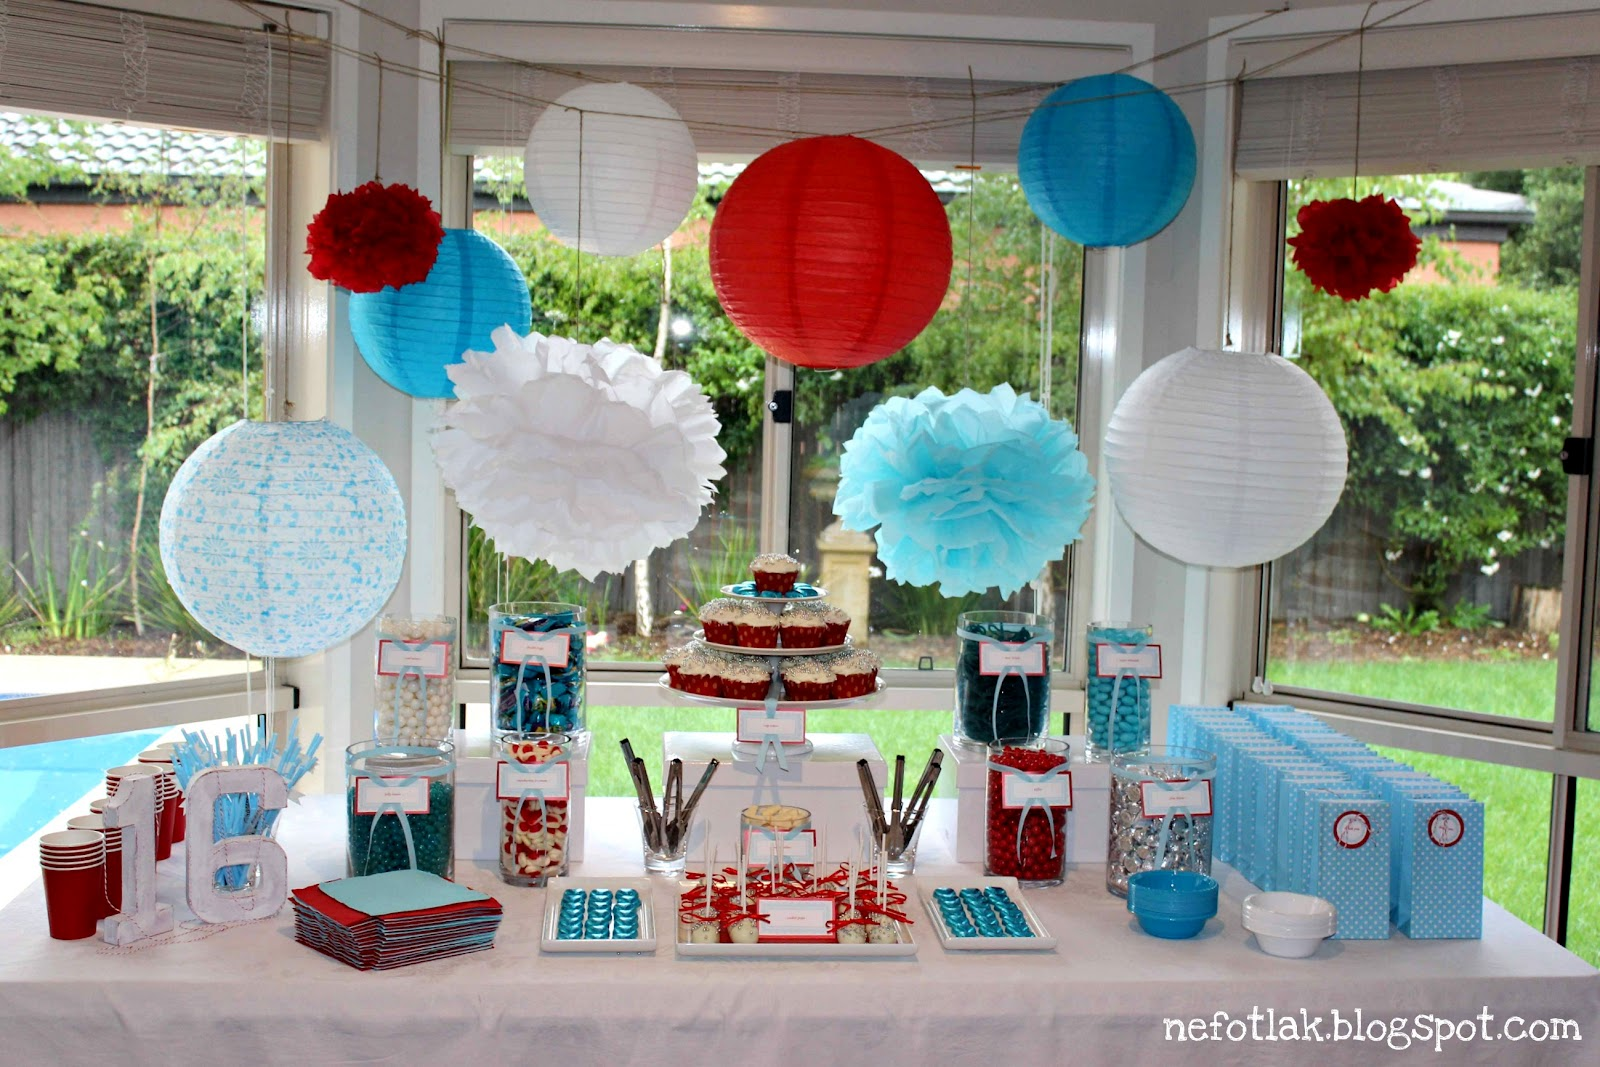 Nefotlak 16th b 39 day party candy bar dessert table for B day party decoration